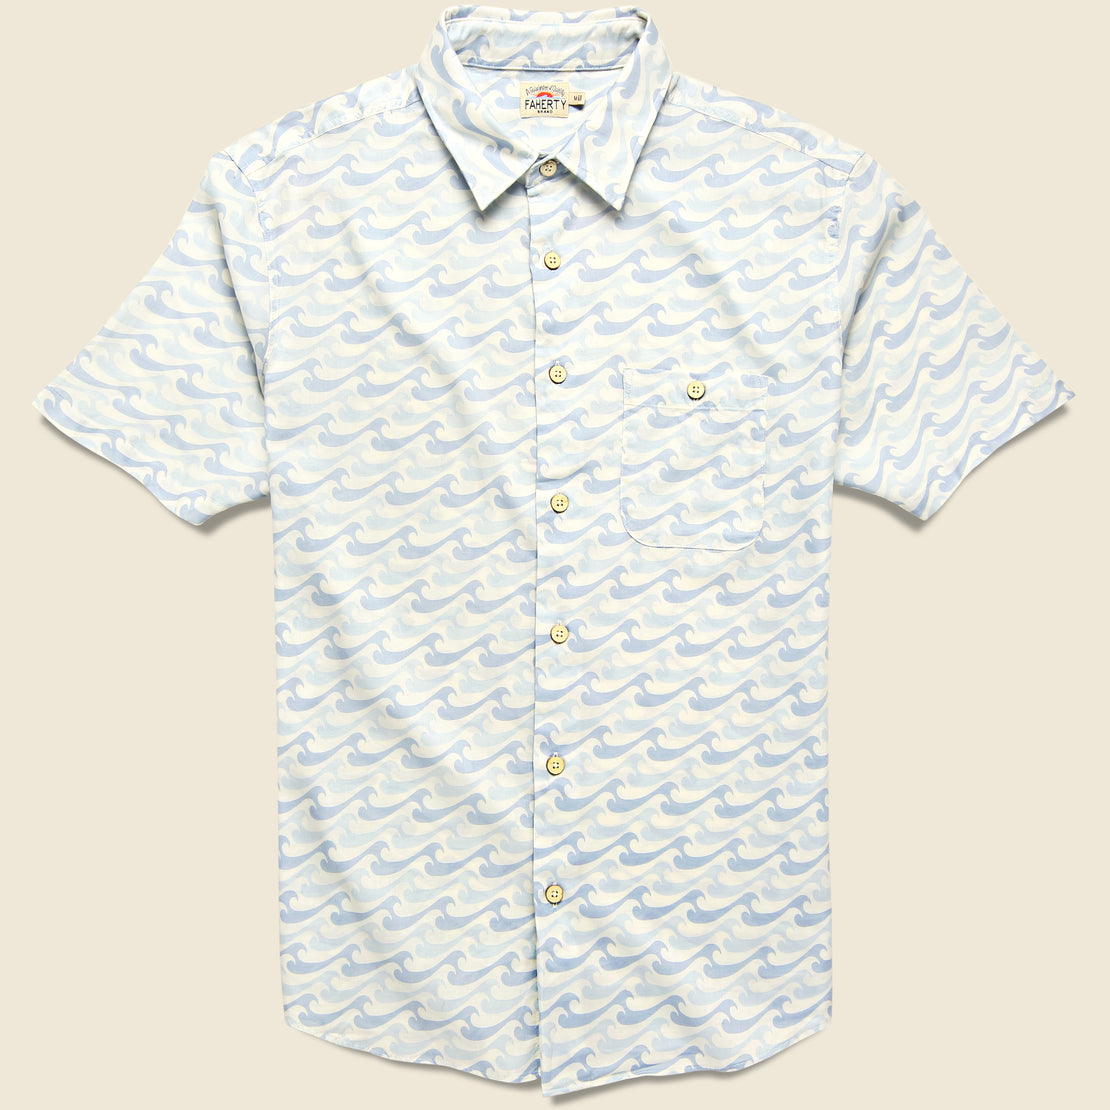 Faherty Playa Shirt - Ivory Endless Peaks